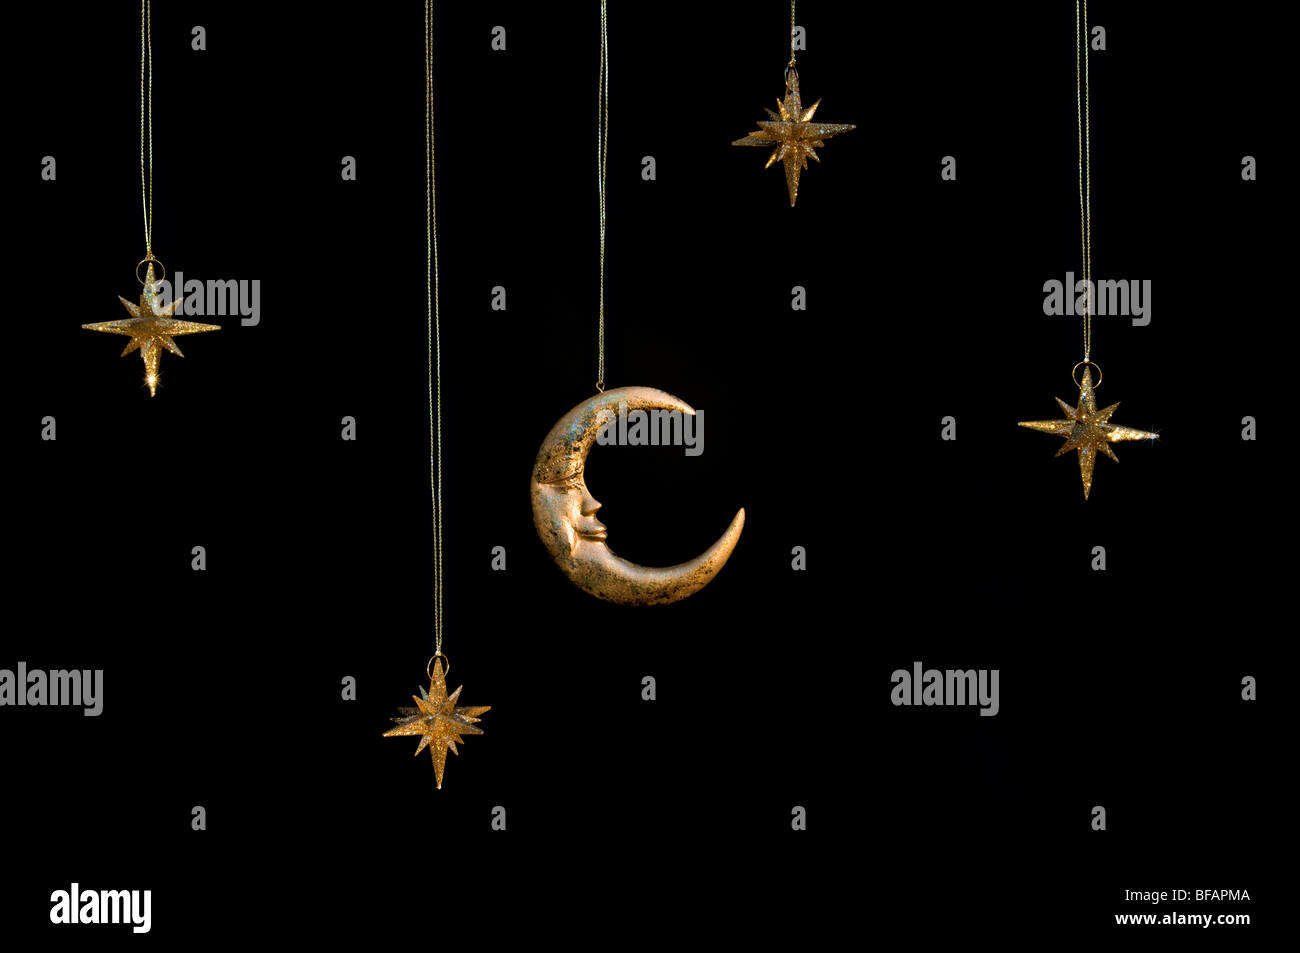 Gold shiny moon and stars sparkly hanging christmas decorations against a black background Stock Photo